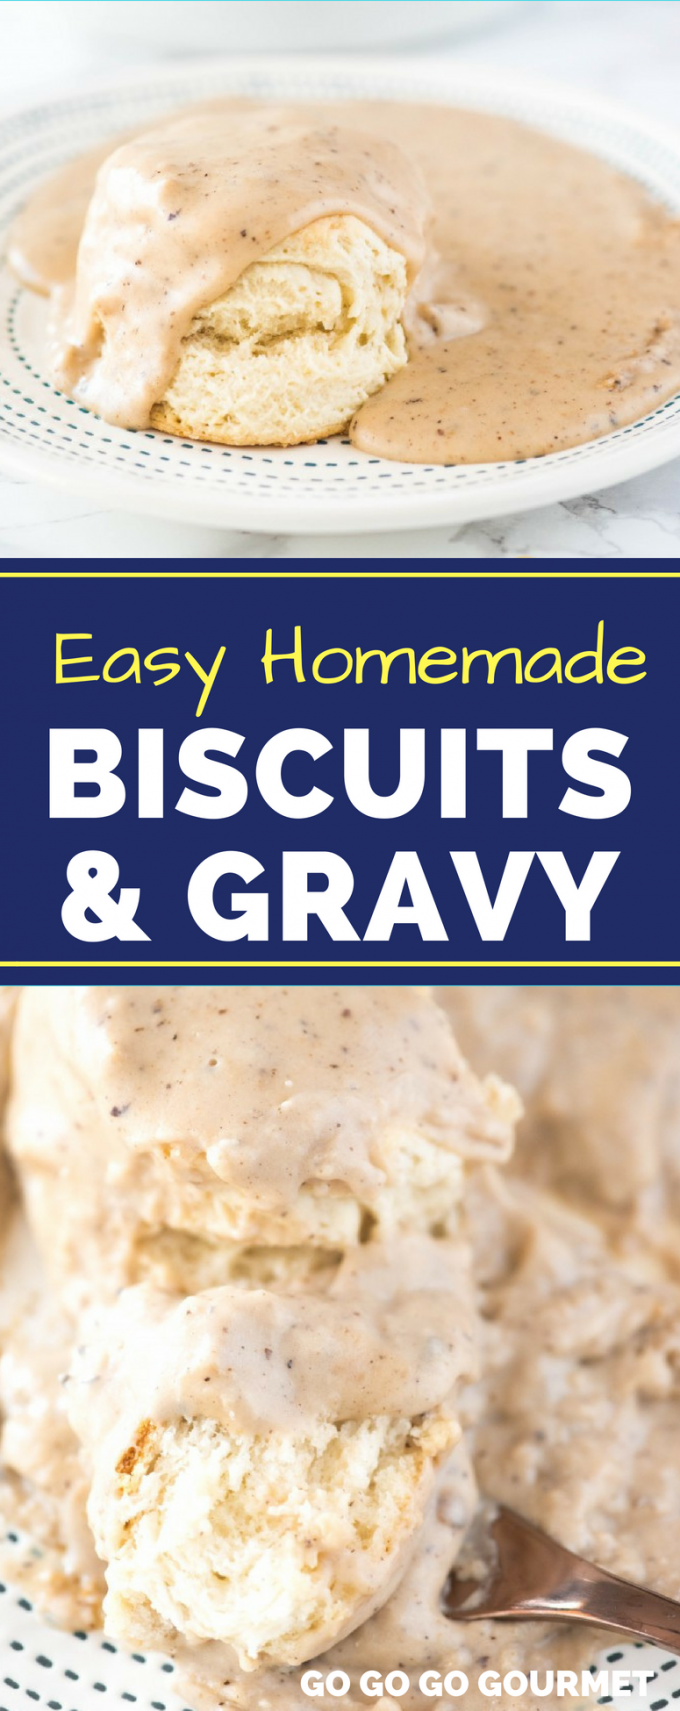 Skip the breakfast casserole and make this easy Biscuits and Gravy recipe for your next brunch! Rivaling the Pioneer Woman recipe with buttery biscuits and flavorful gravy, this homemade meal is sure to please! #homemadebiscuitsandgravy #easybrunchrecipes #buscuitsandgravyrecipe #gogogogourmet via @gogogogourmet